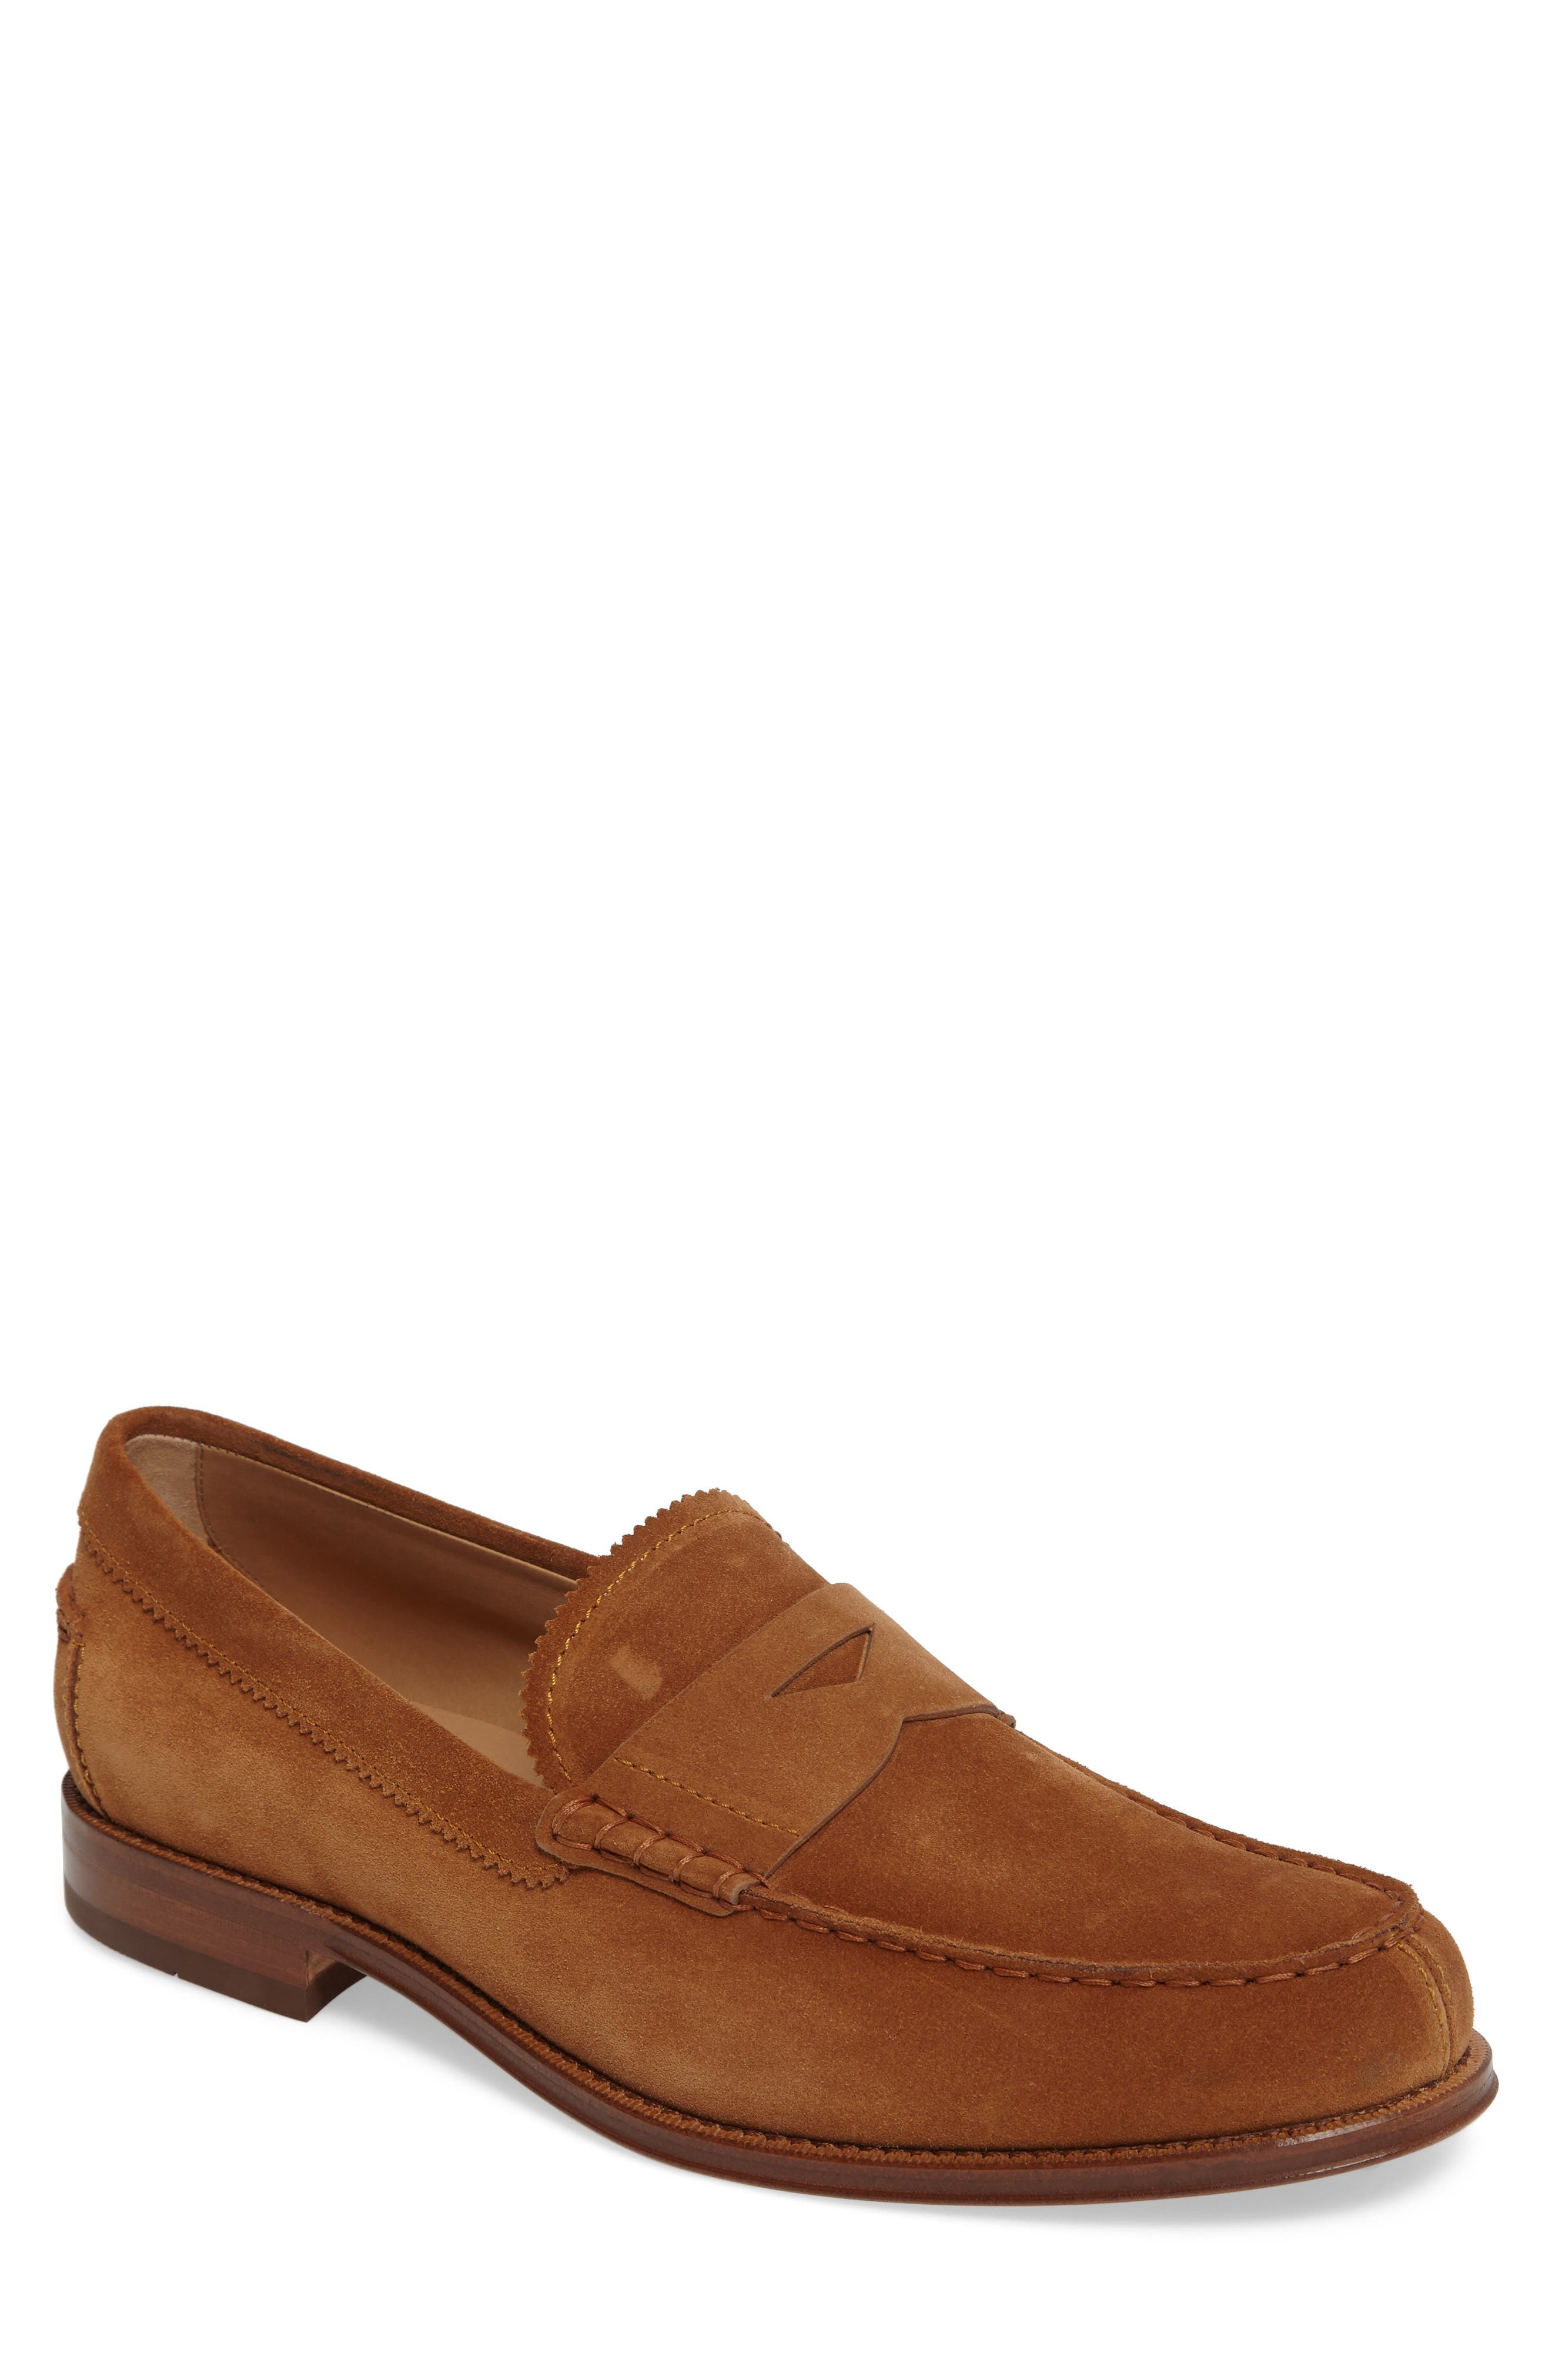 Suede Penny Loafer,                             Main thumbnail 1, color,                             215